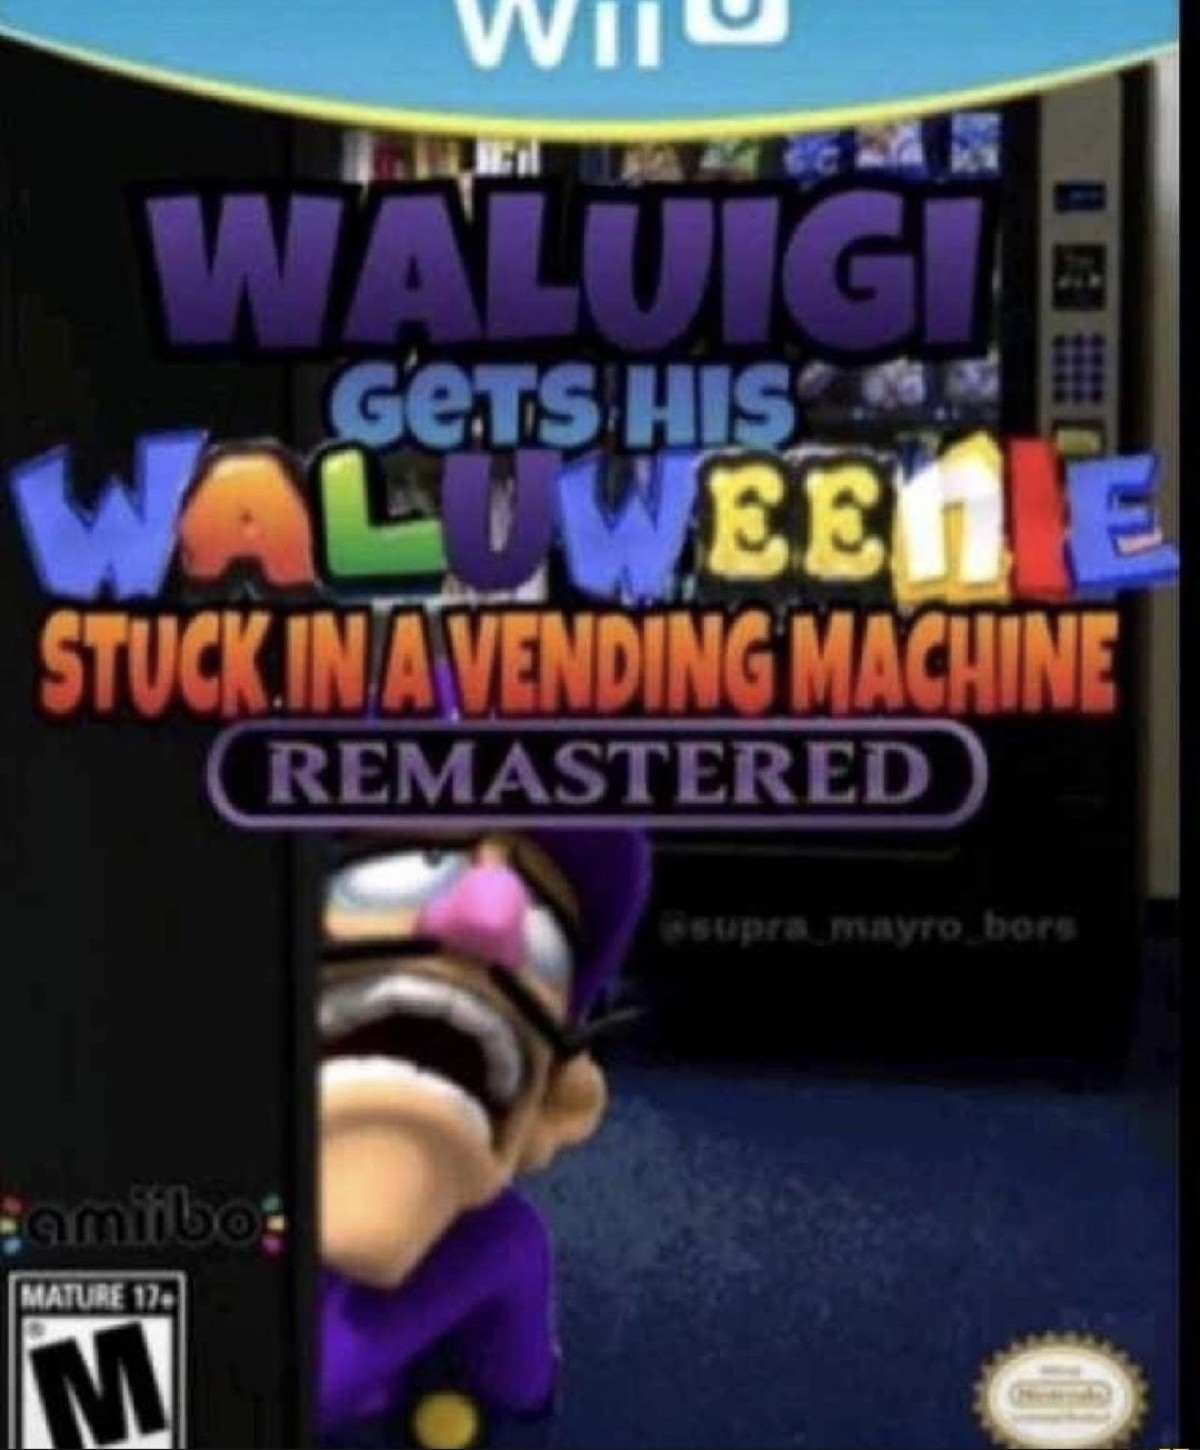 WAAAAAAAAAAAAAAAAAAAAAAAAA. .. So that's why Waluigi couldn't make it to Smash.